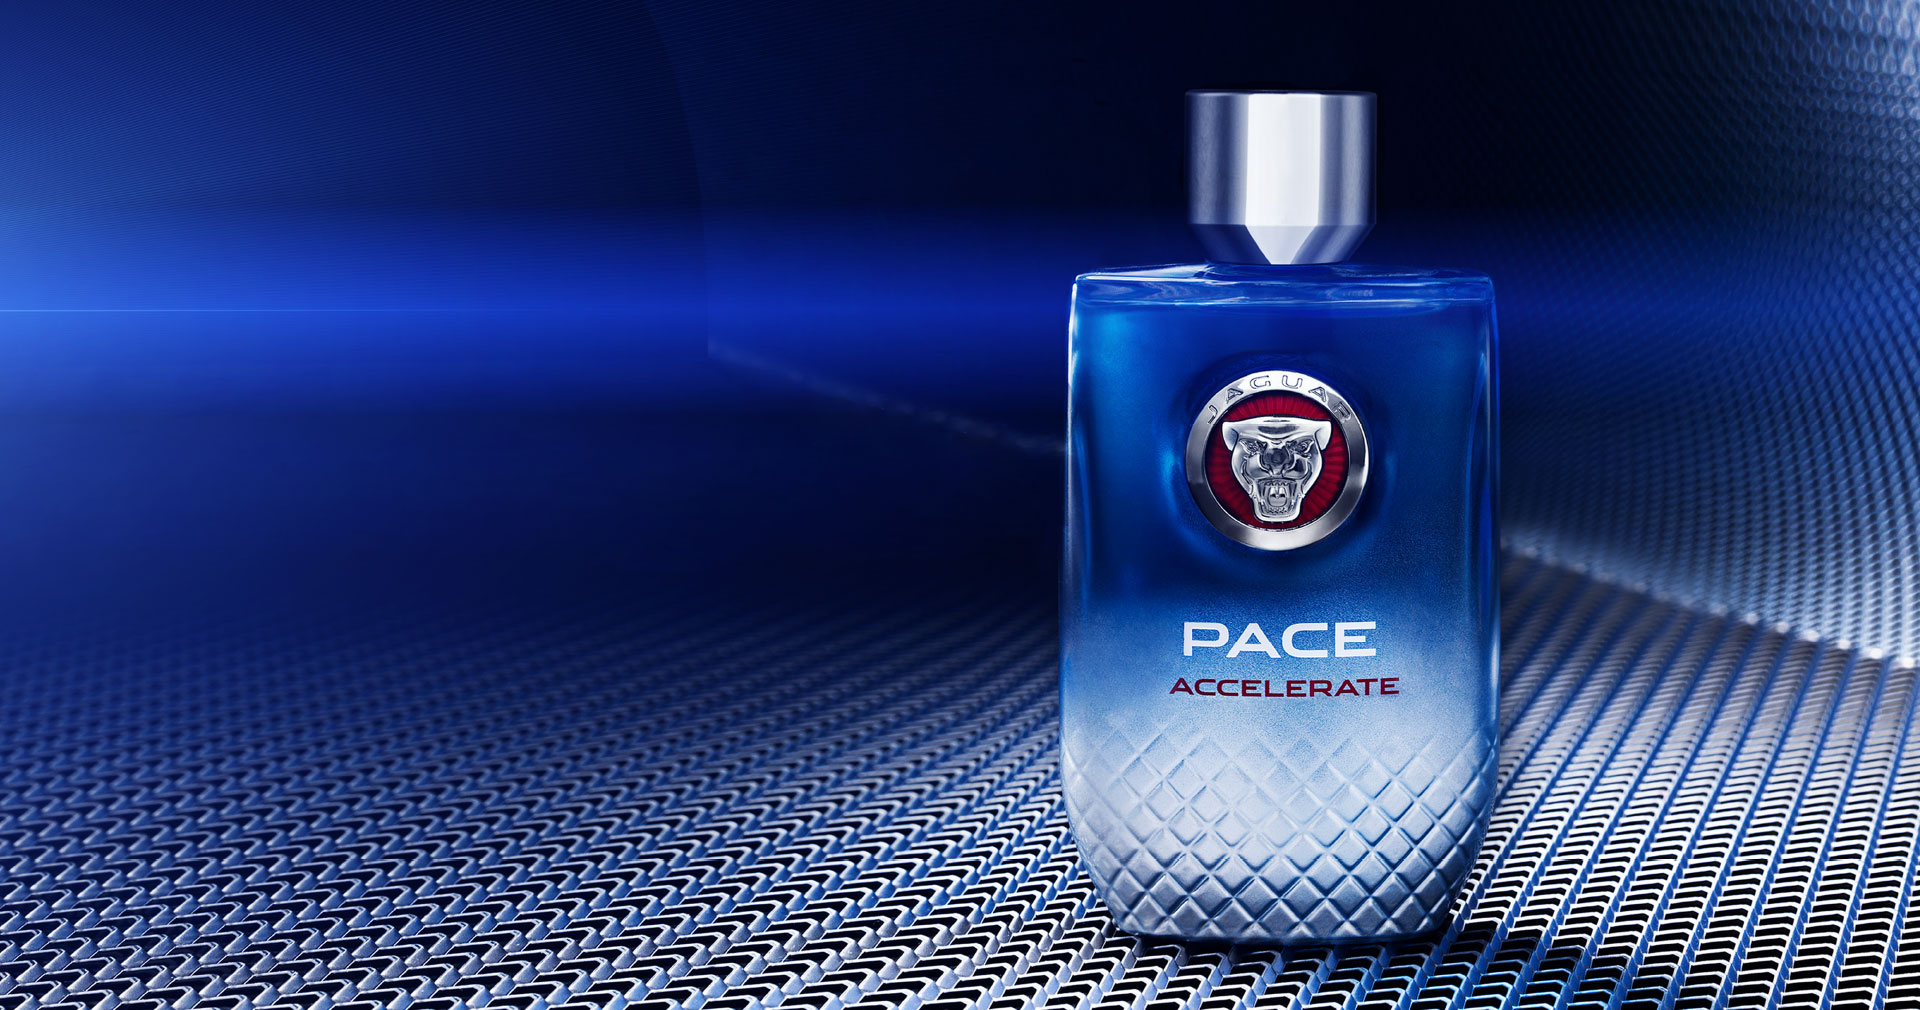 Pace Accelerate